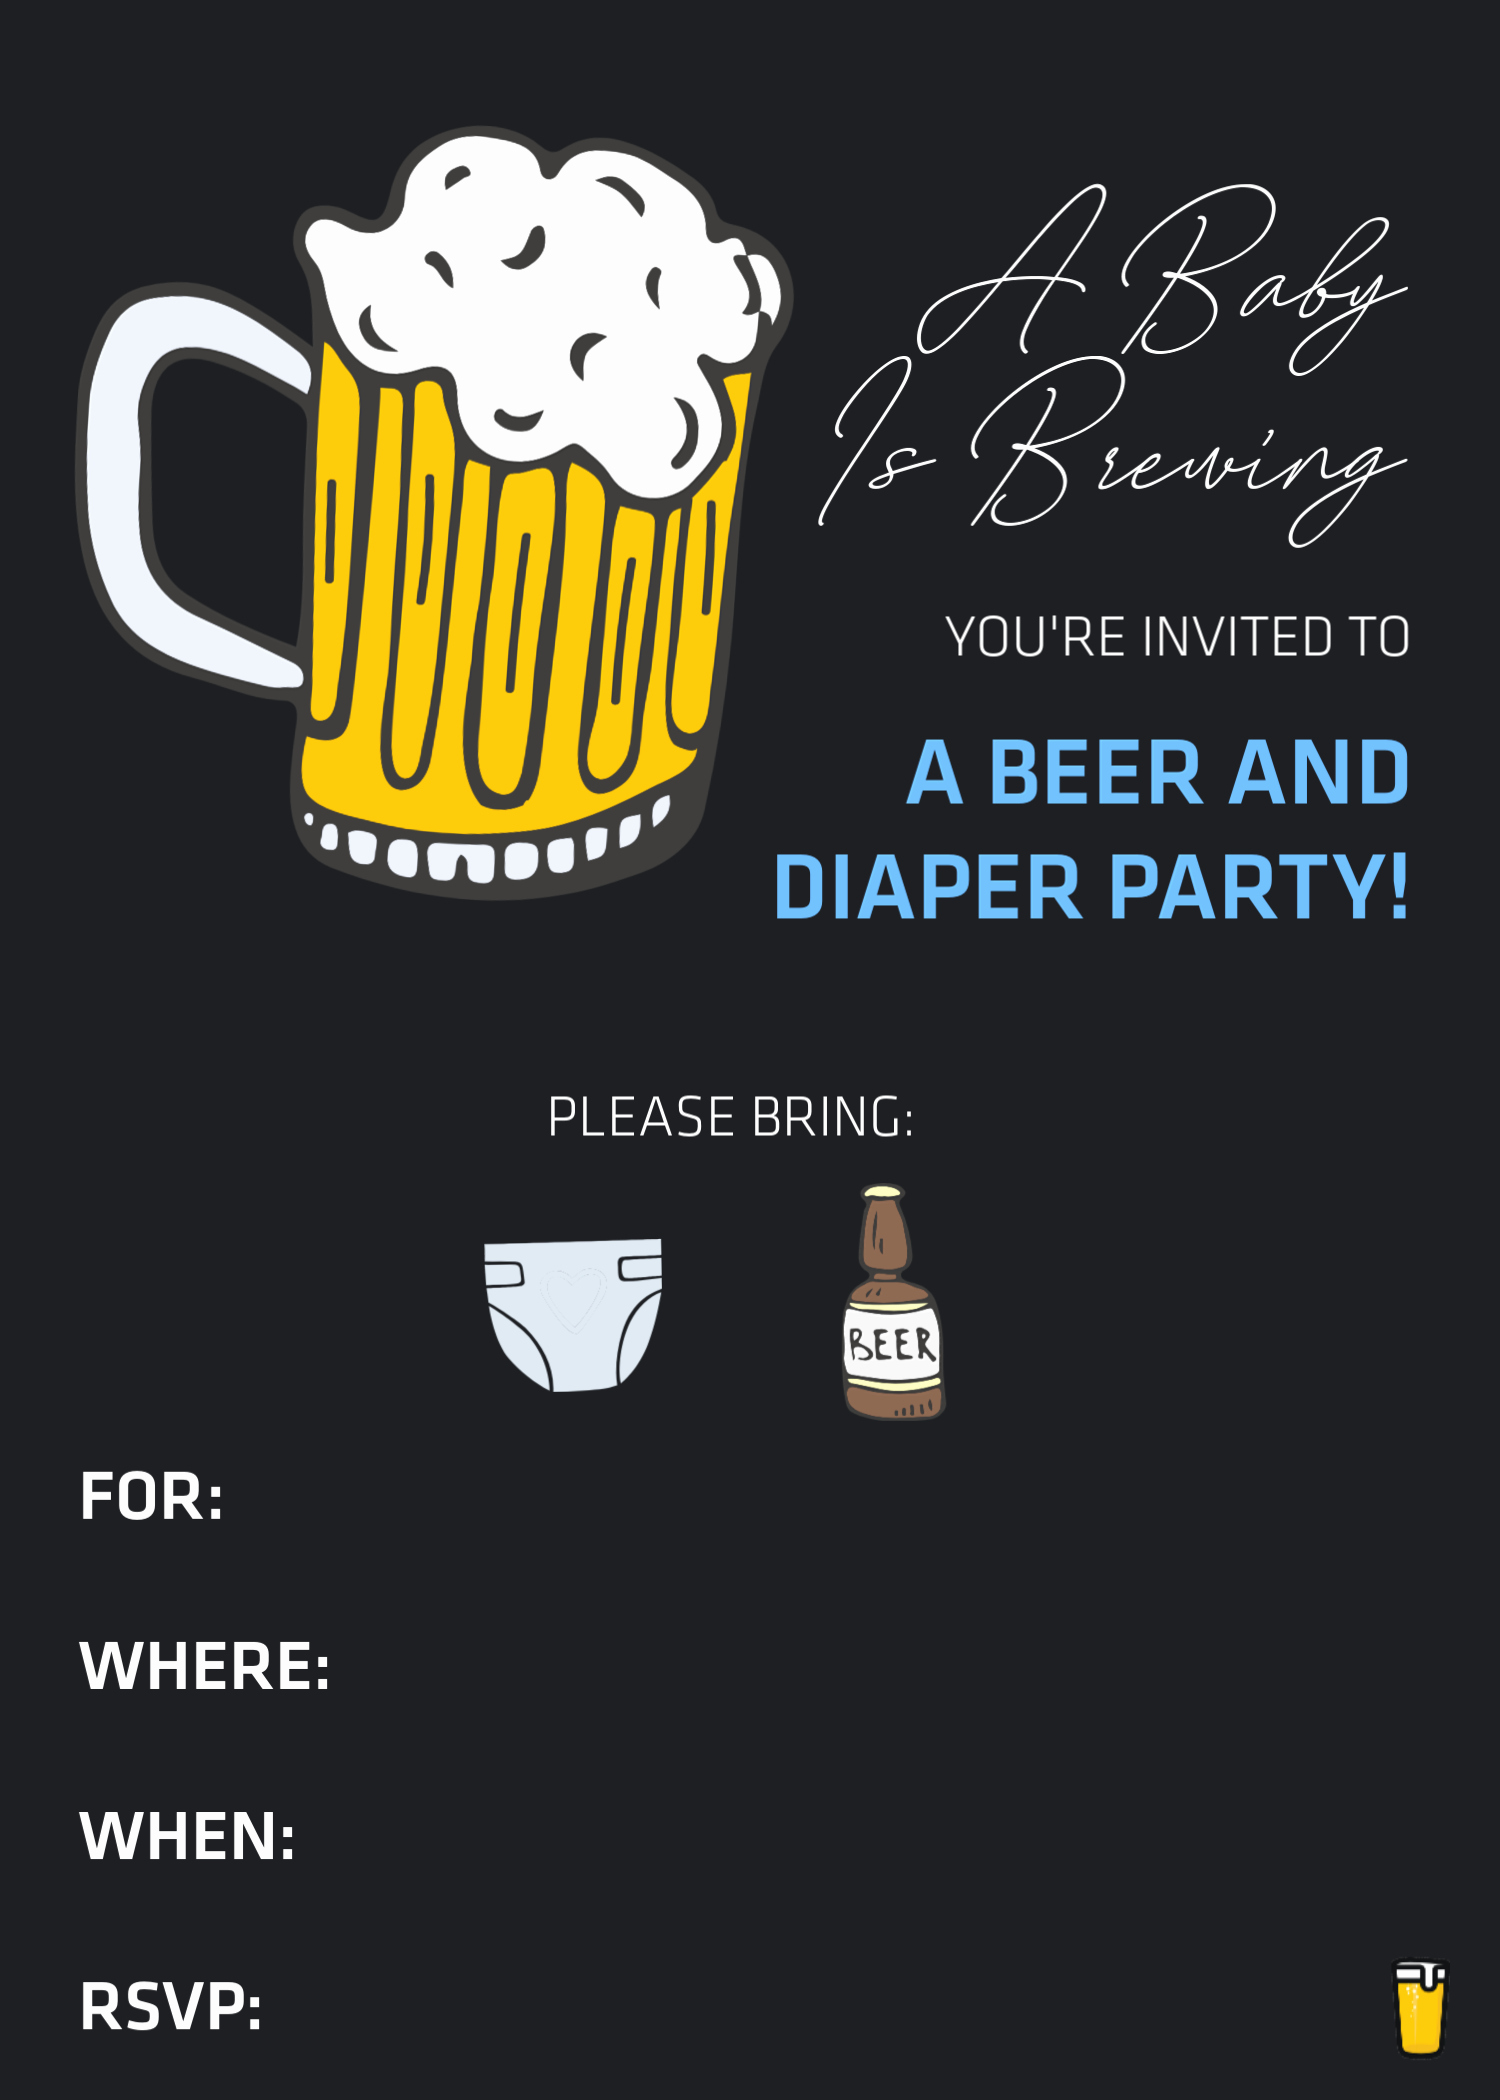 Diaper Party Invitation Templates Fresh How to Throw A Beer & Diaper Party – the Best Dad Baby